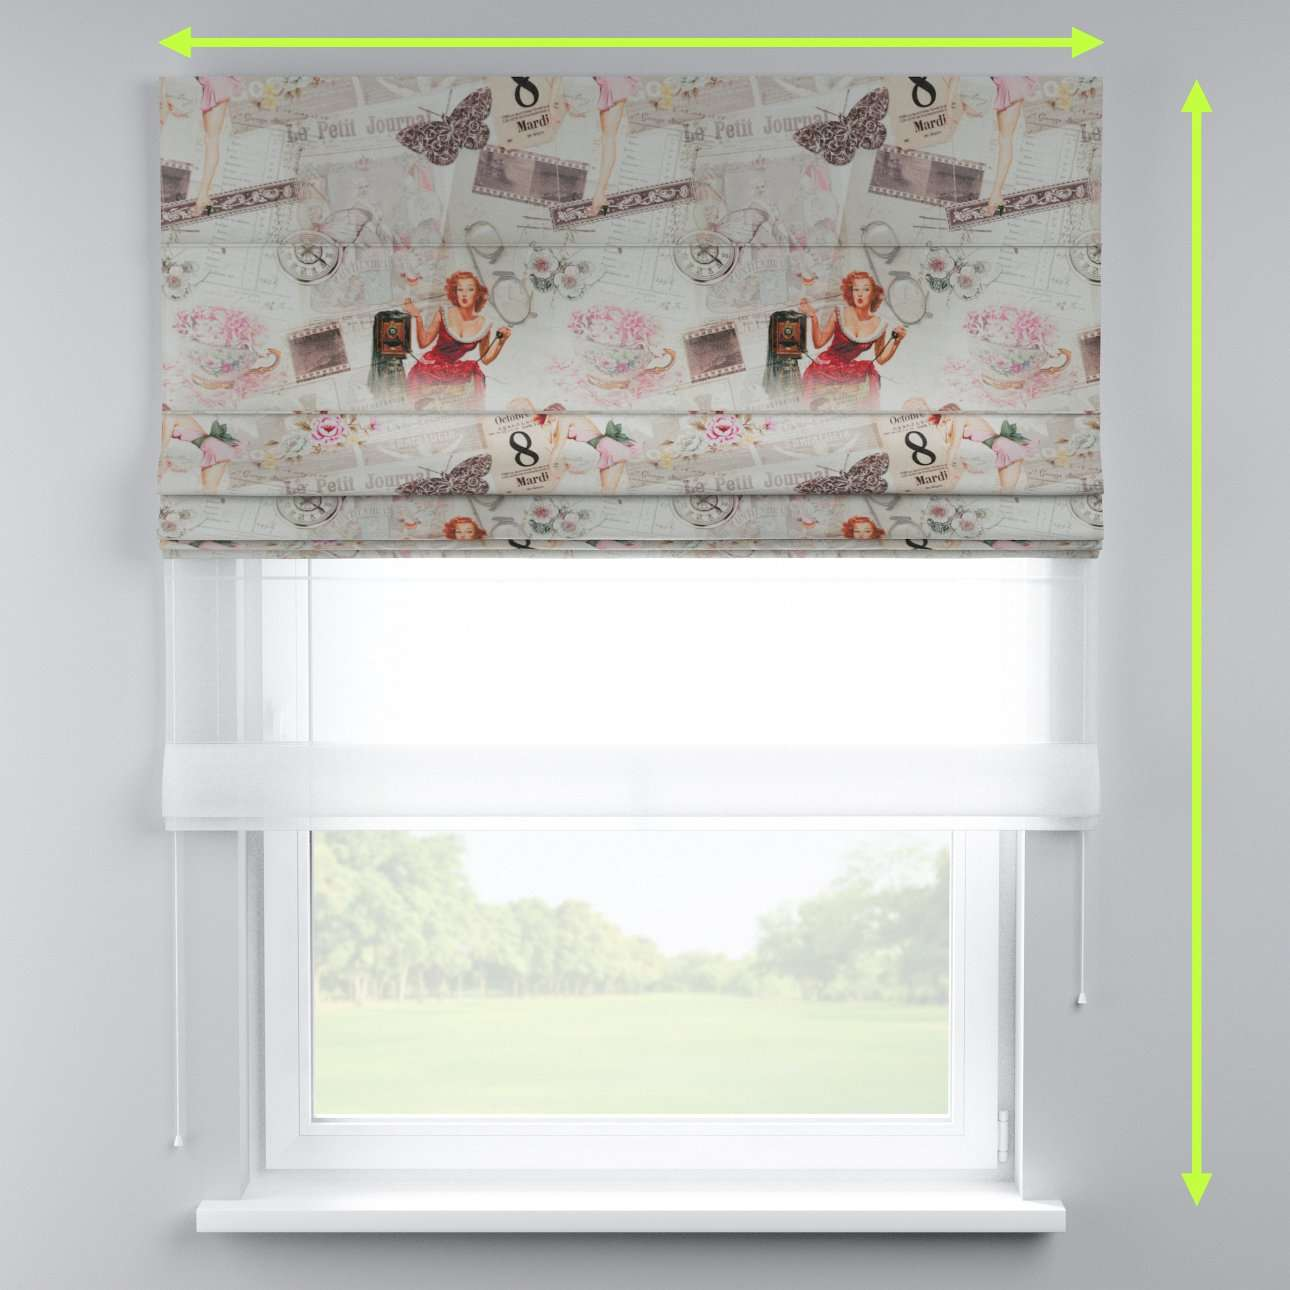 Voile and fabric roman blind (DUO II) in collection Freestyle, fabric: 140-99